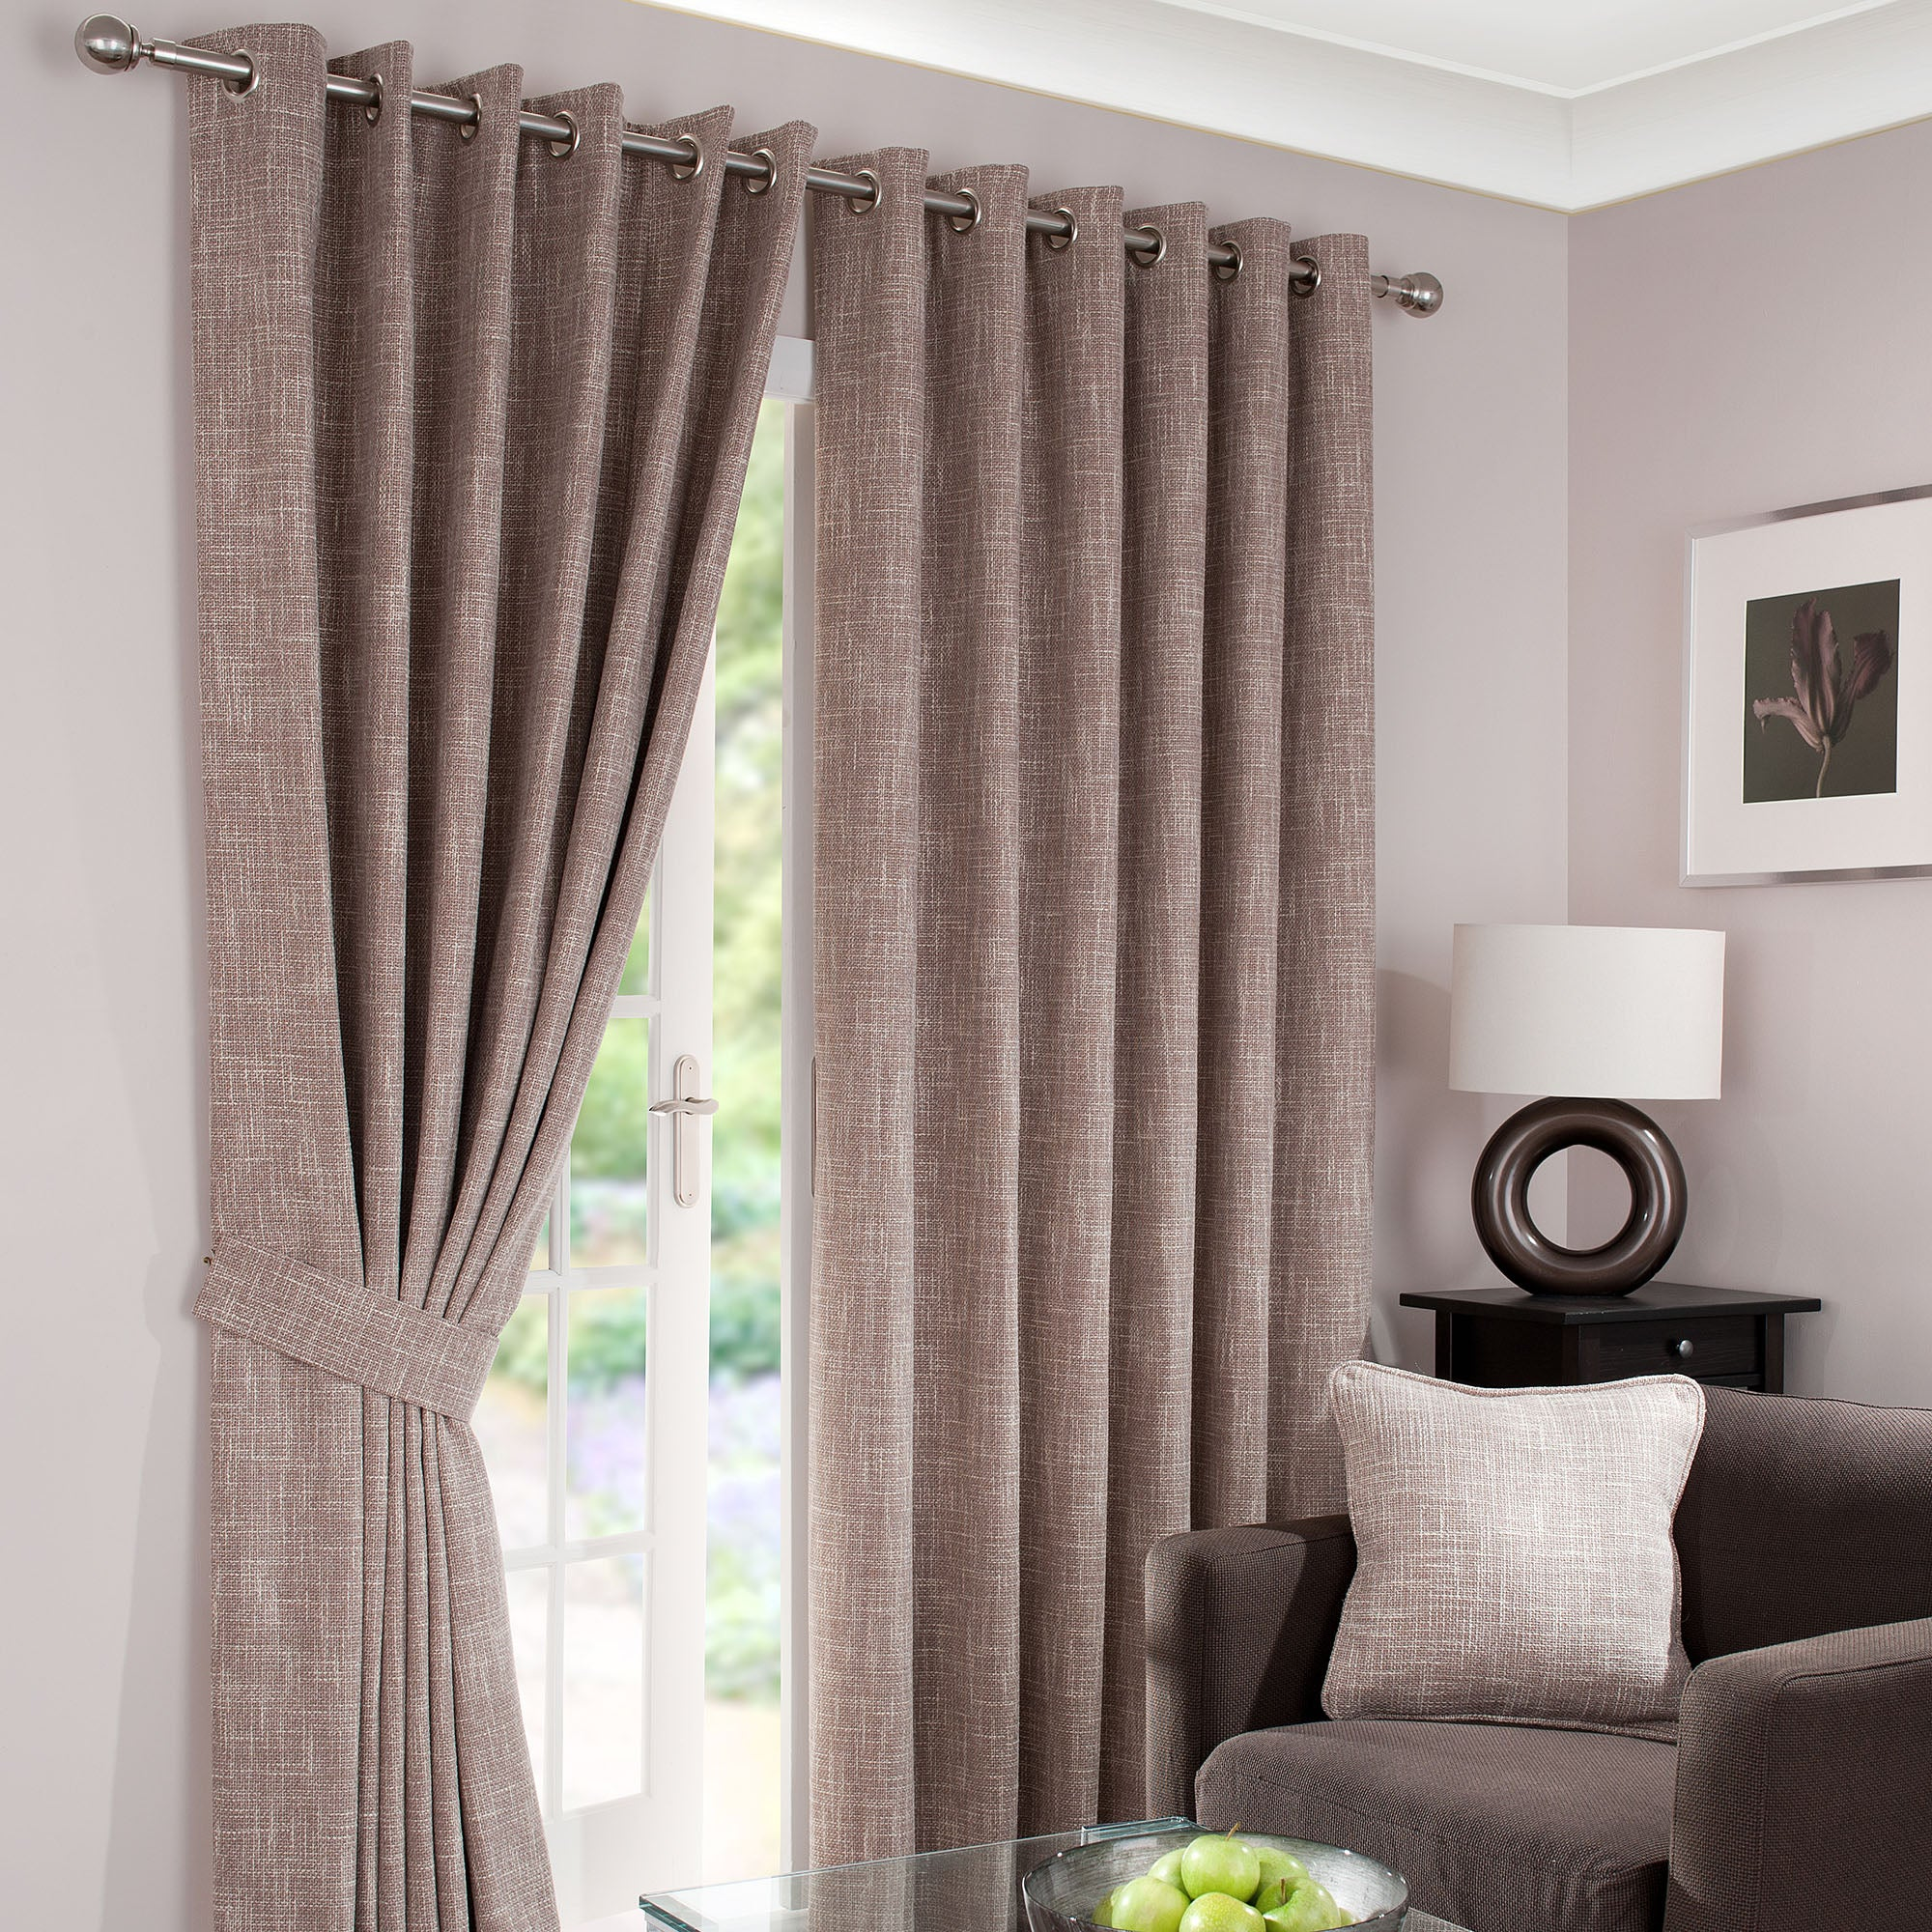 Mink Lorenza Lined Eyelet Curtains